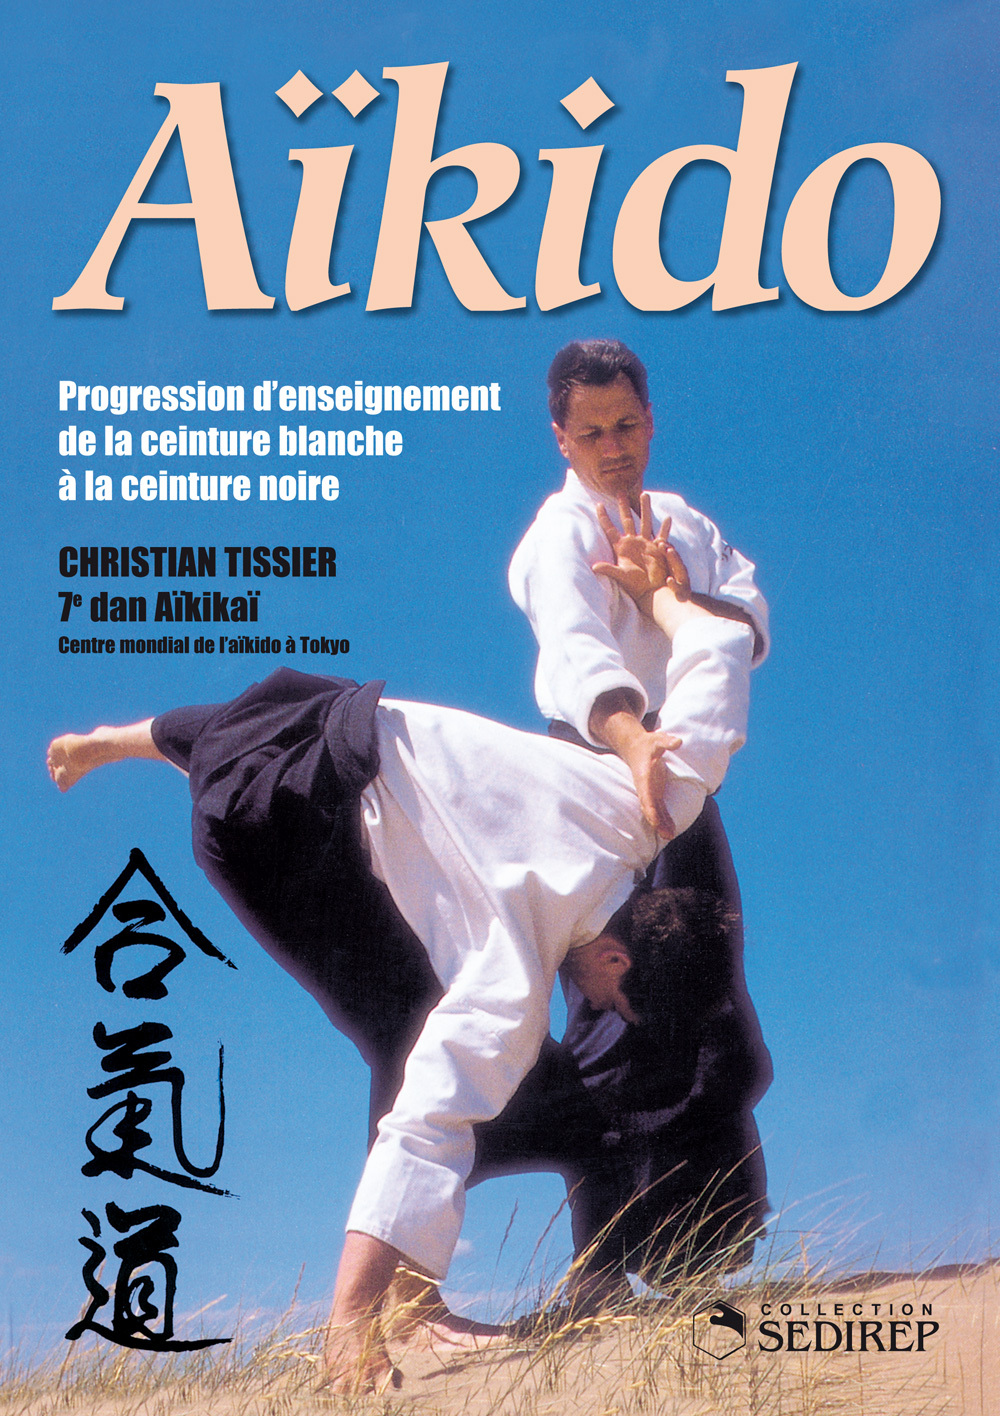 AIKIDO PROGRESSION D'ENSEIGNEMENT